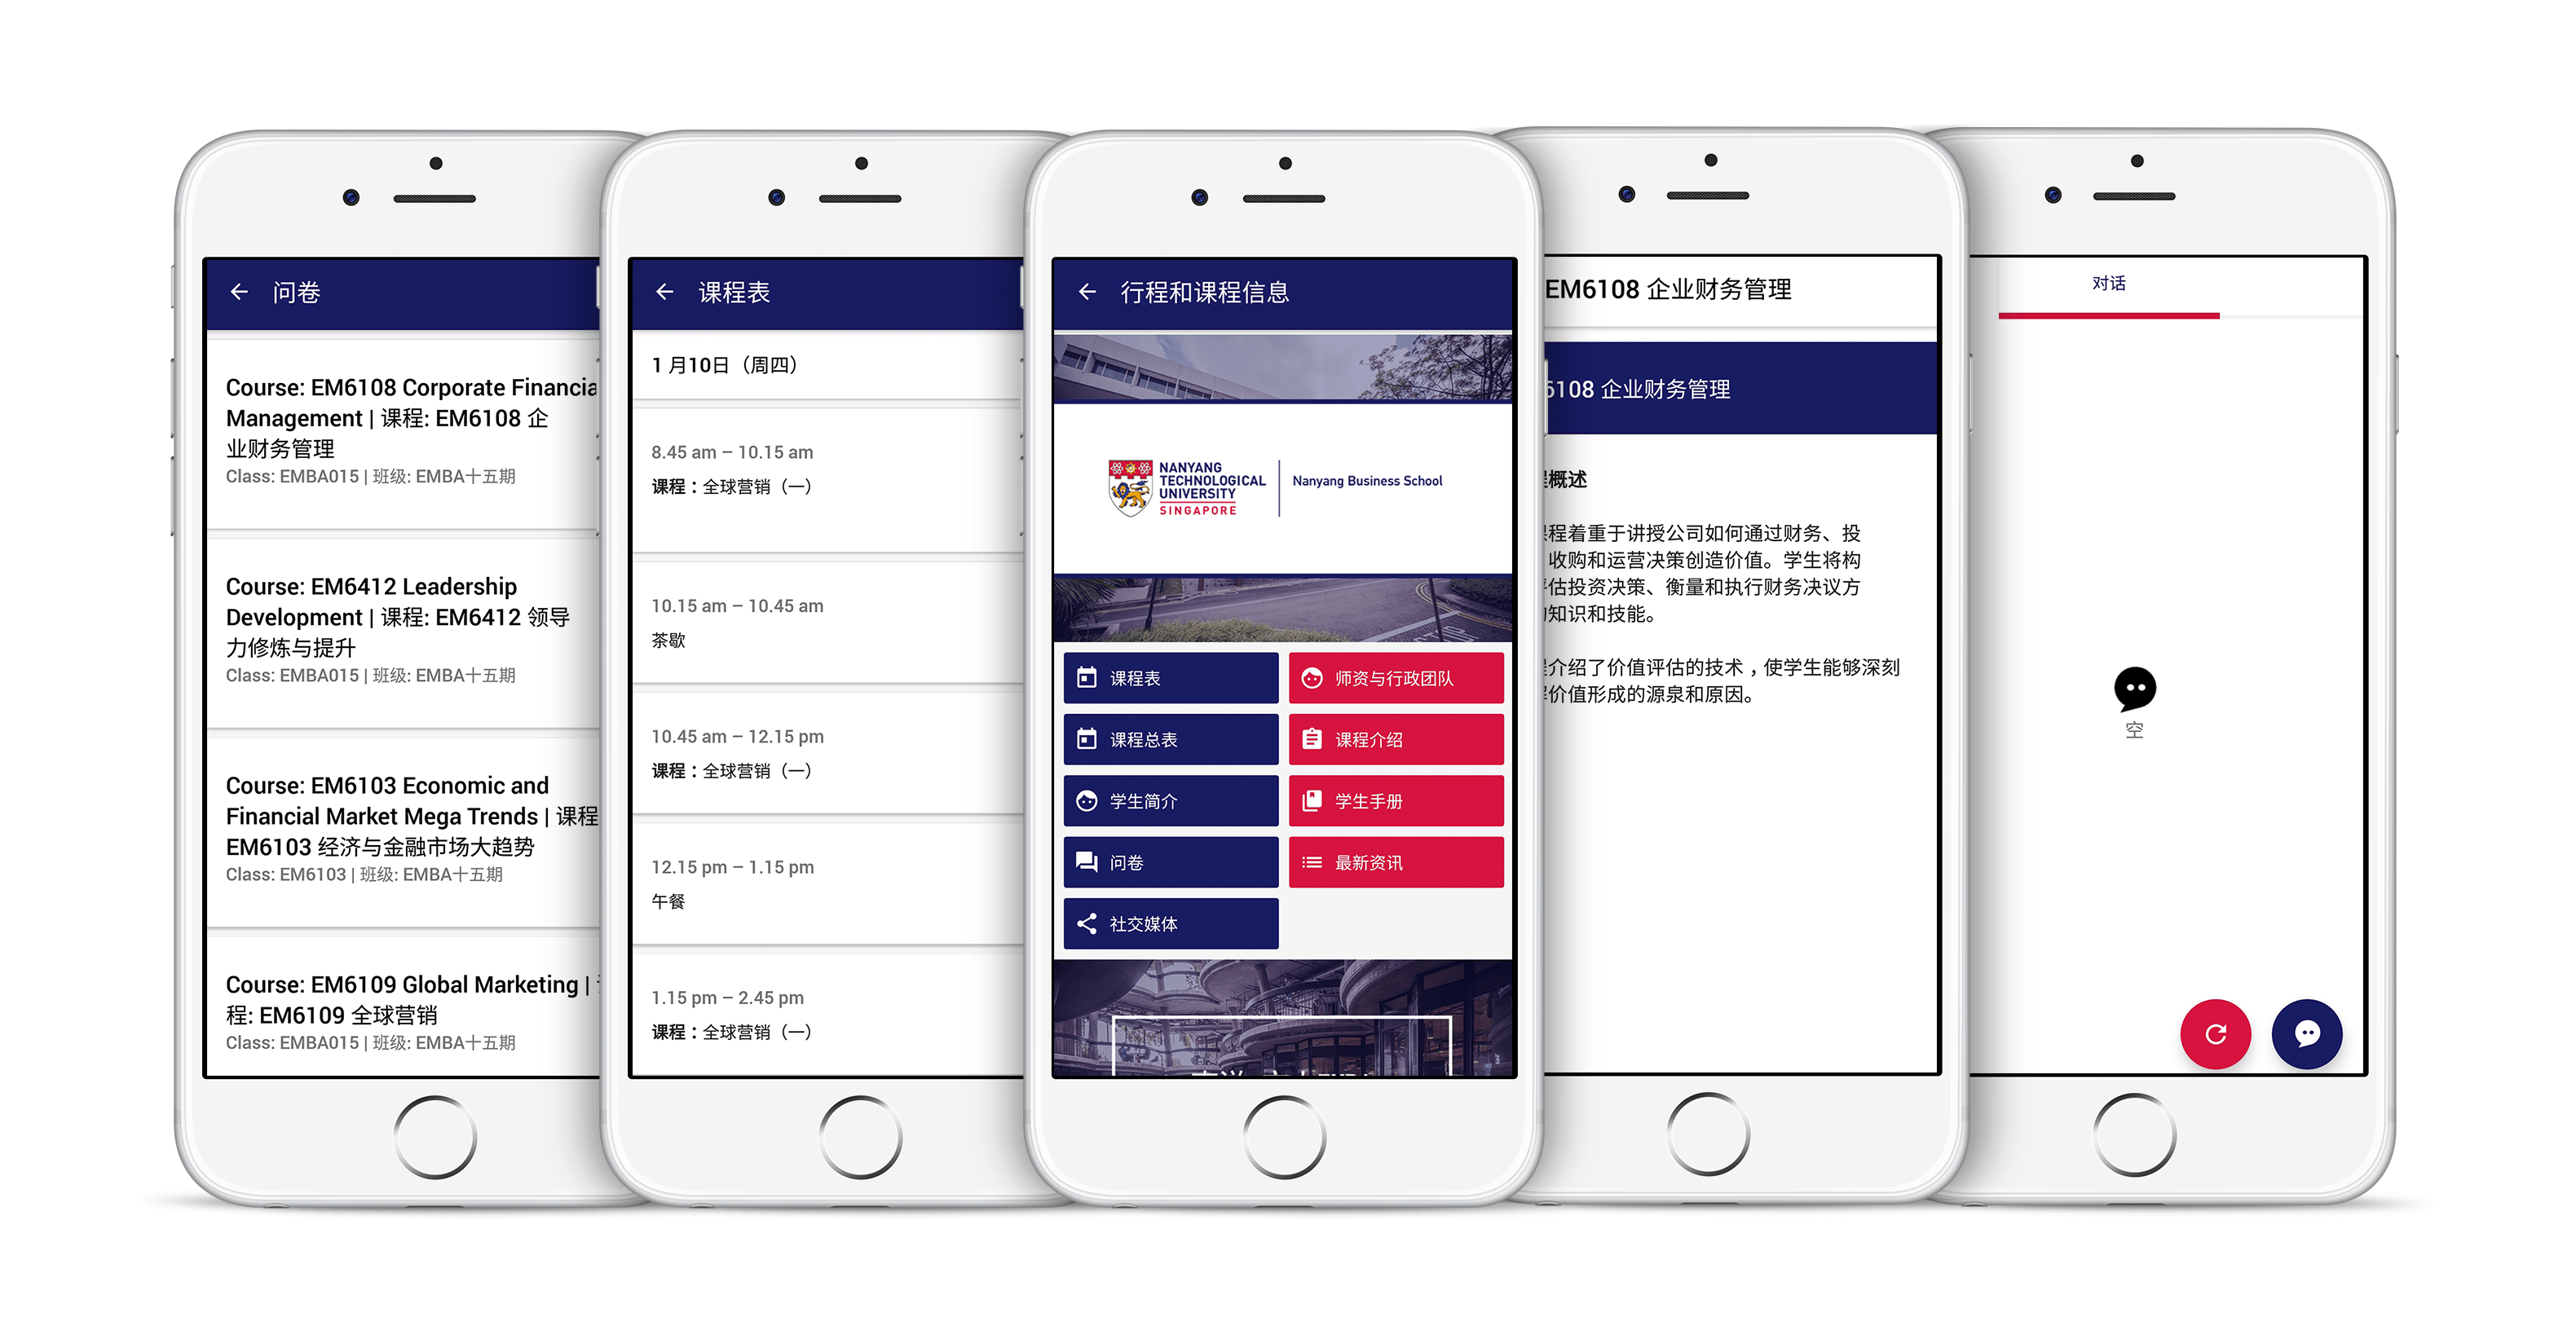 5 screenshots of NTU's opening programs app